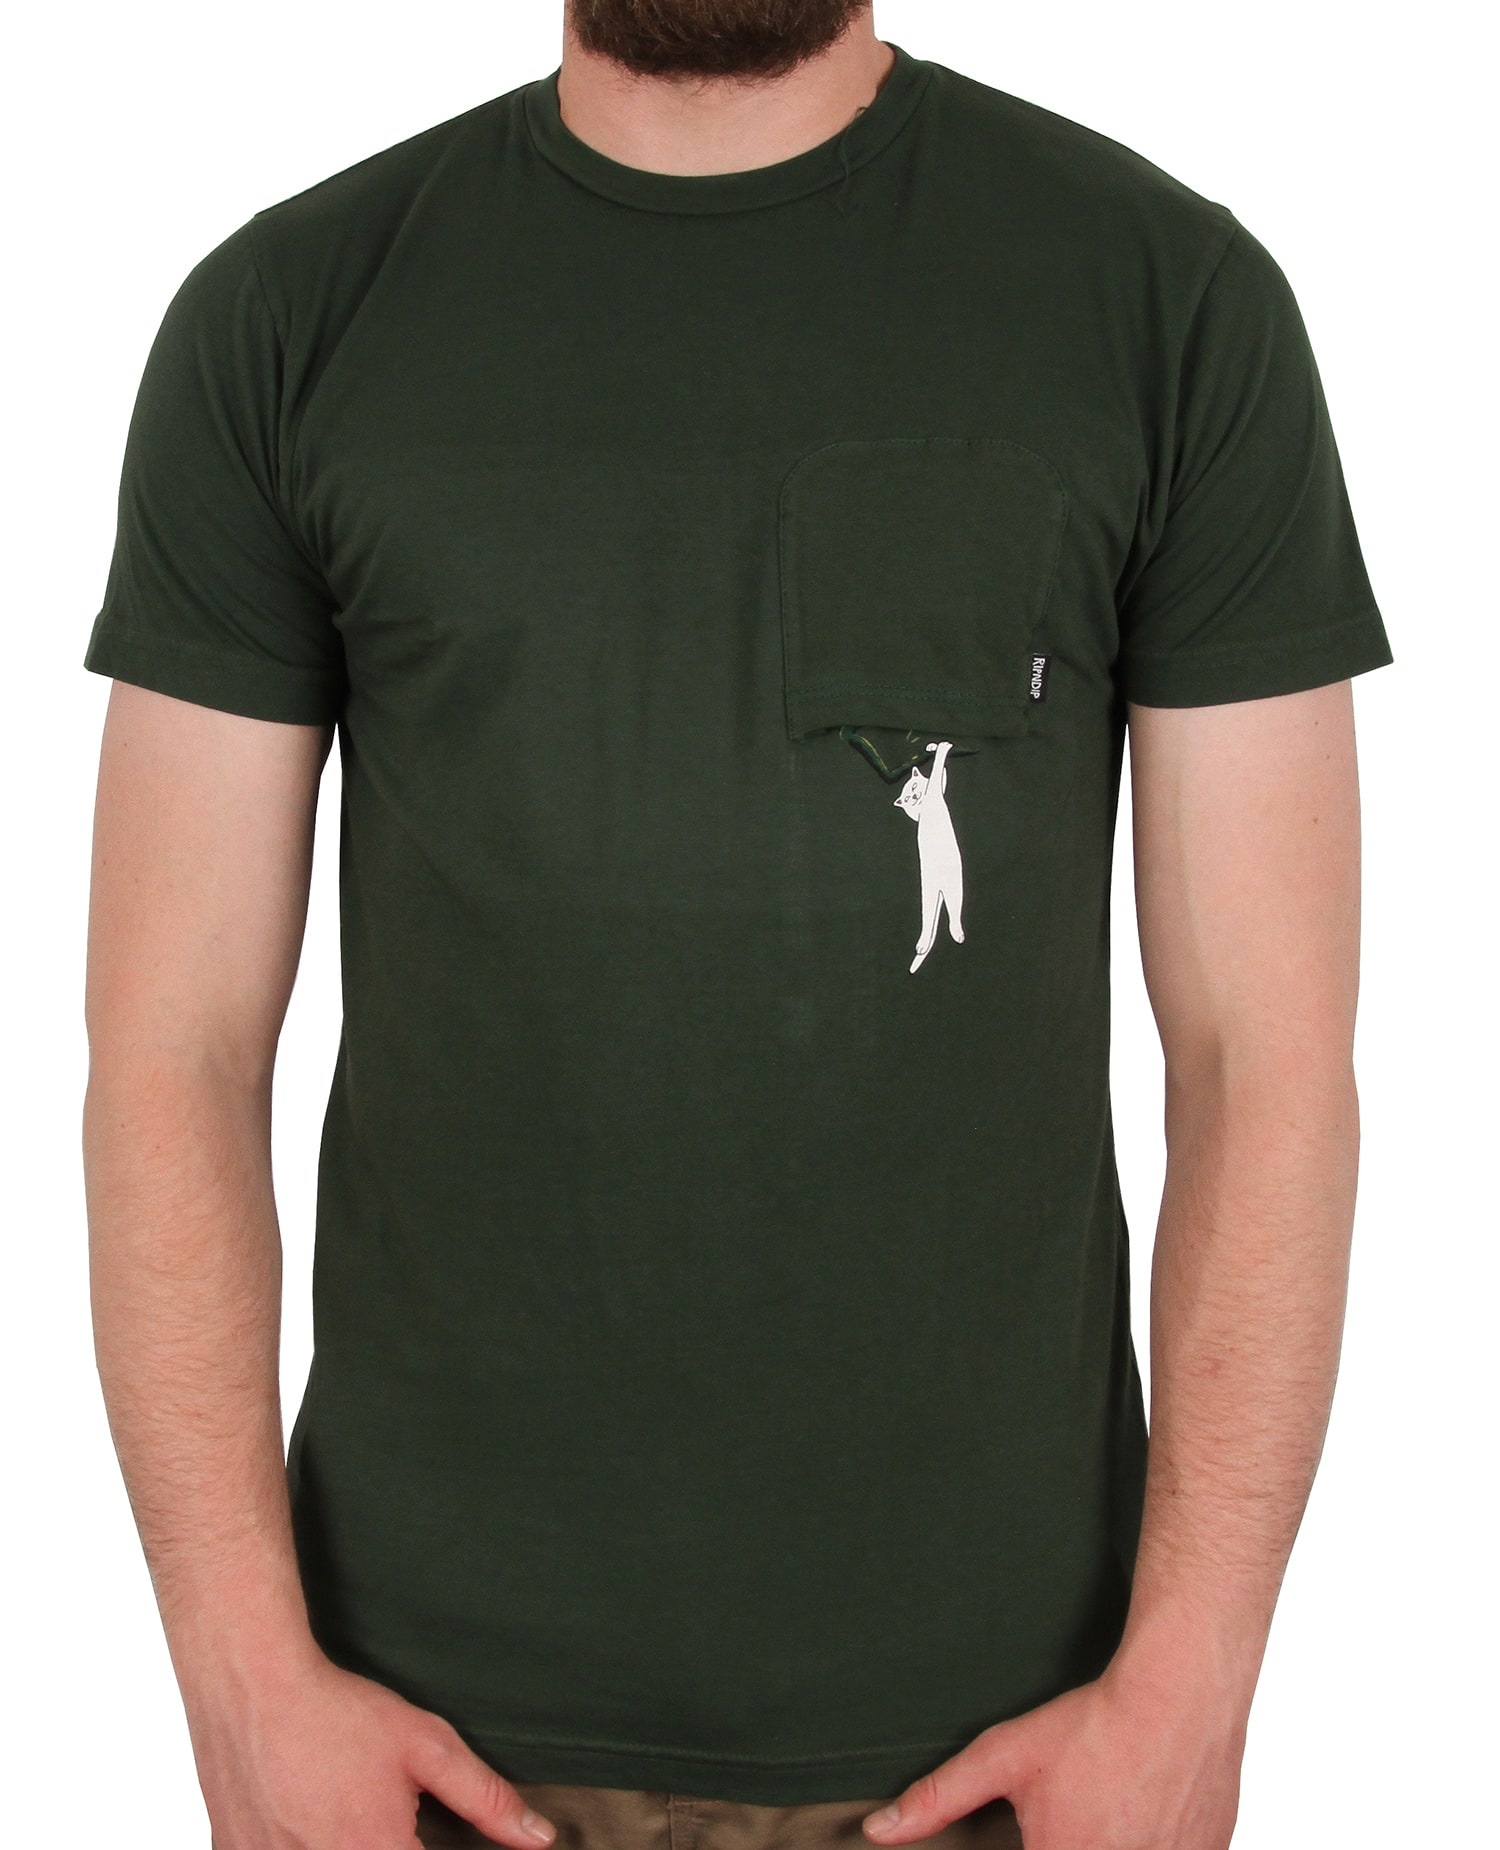 RIPNDIP Jungle Nerm T shirt - Hunter Green